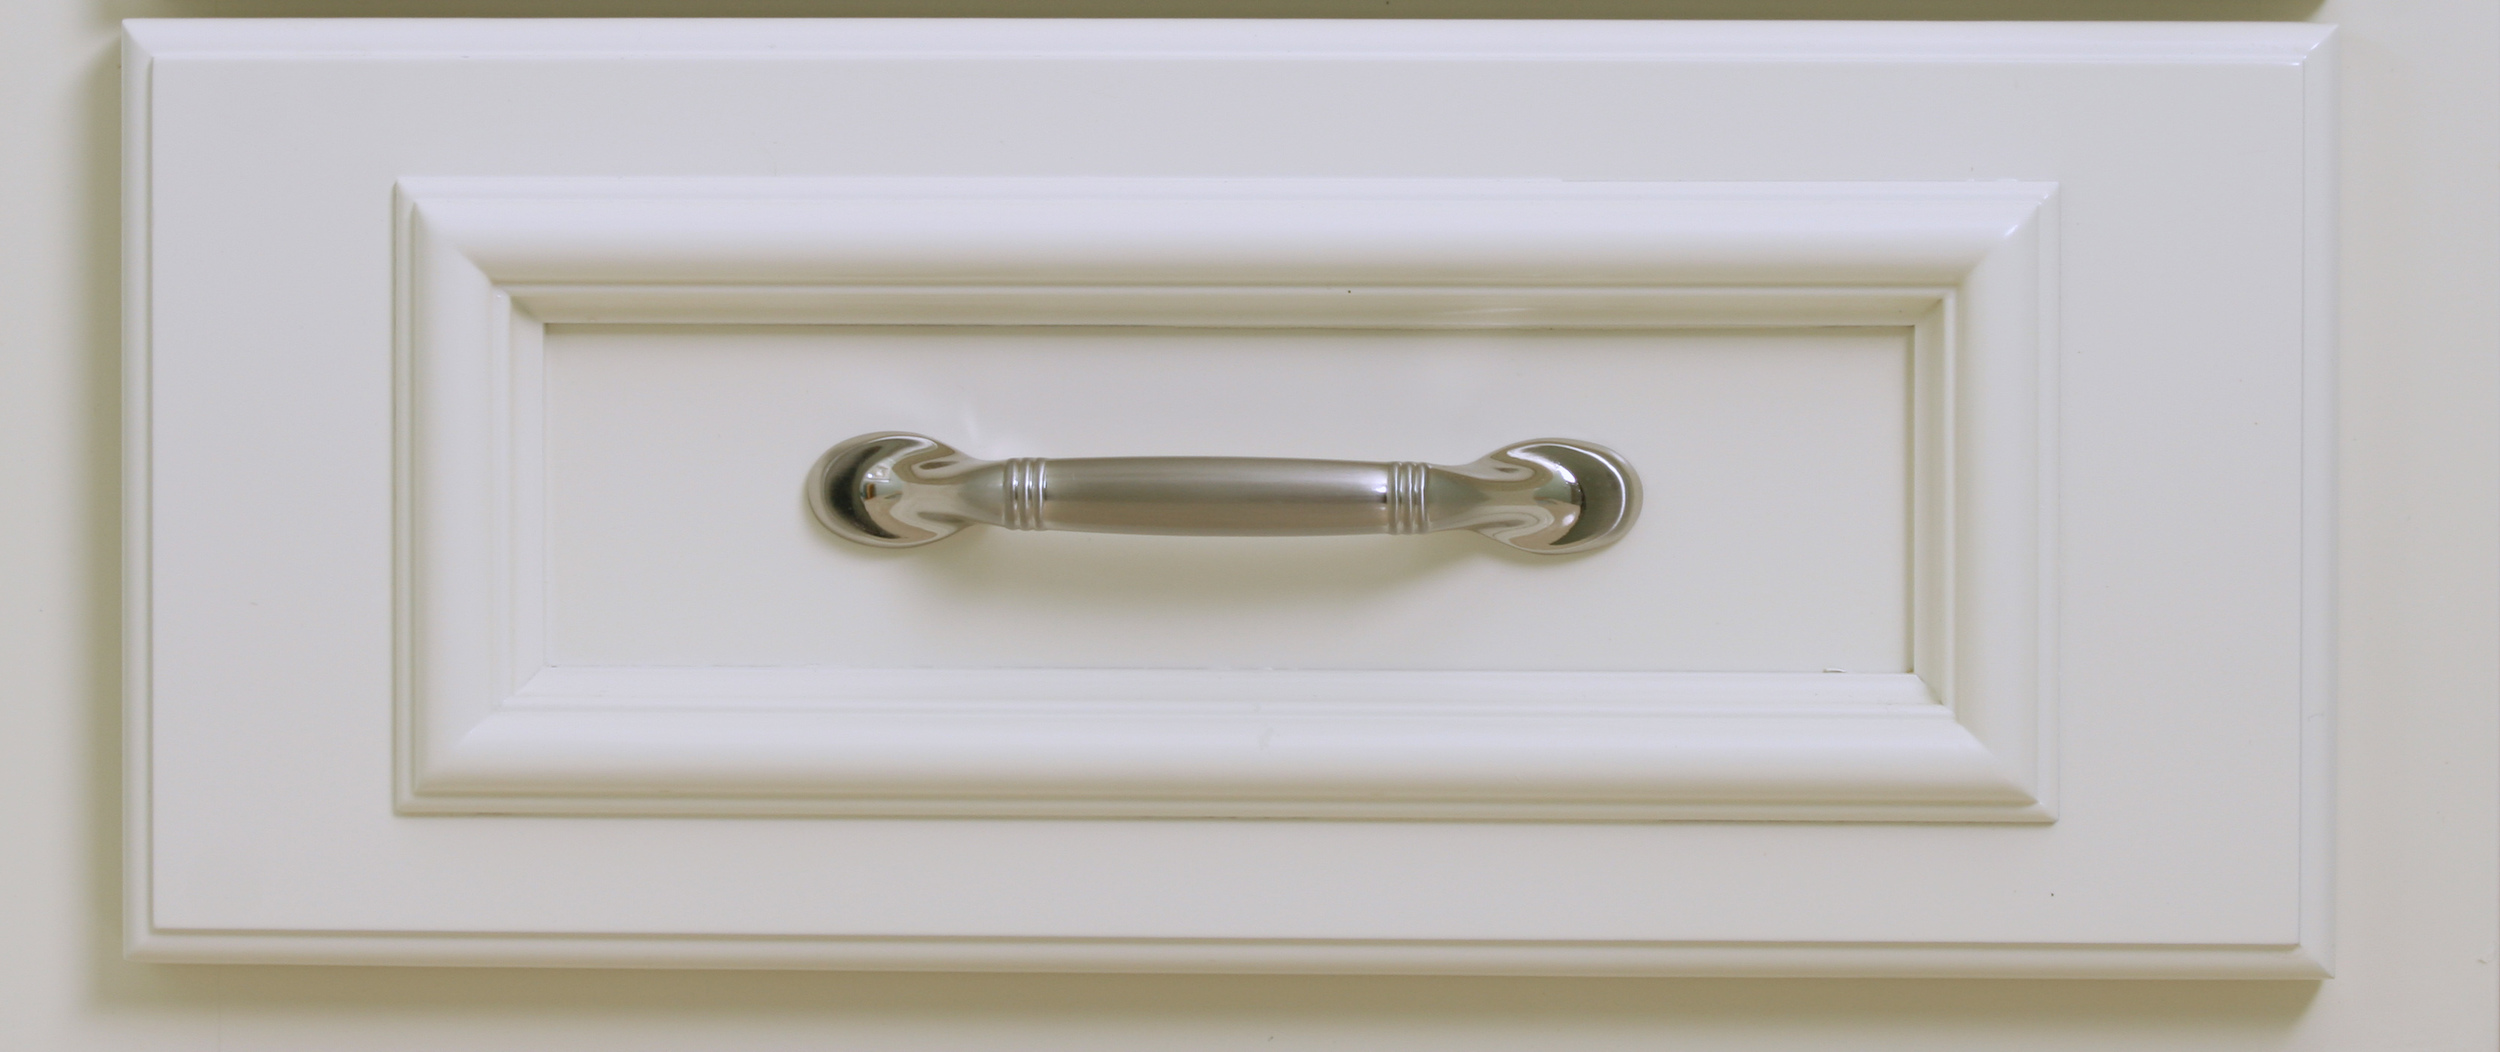 bathroom pulls, handles for cabinet drawers, photos of drawers